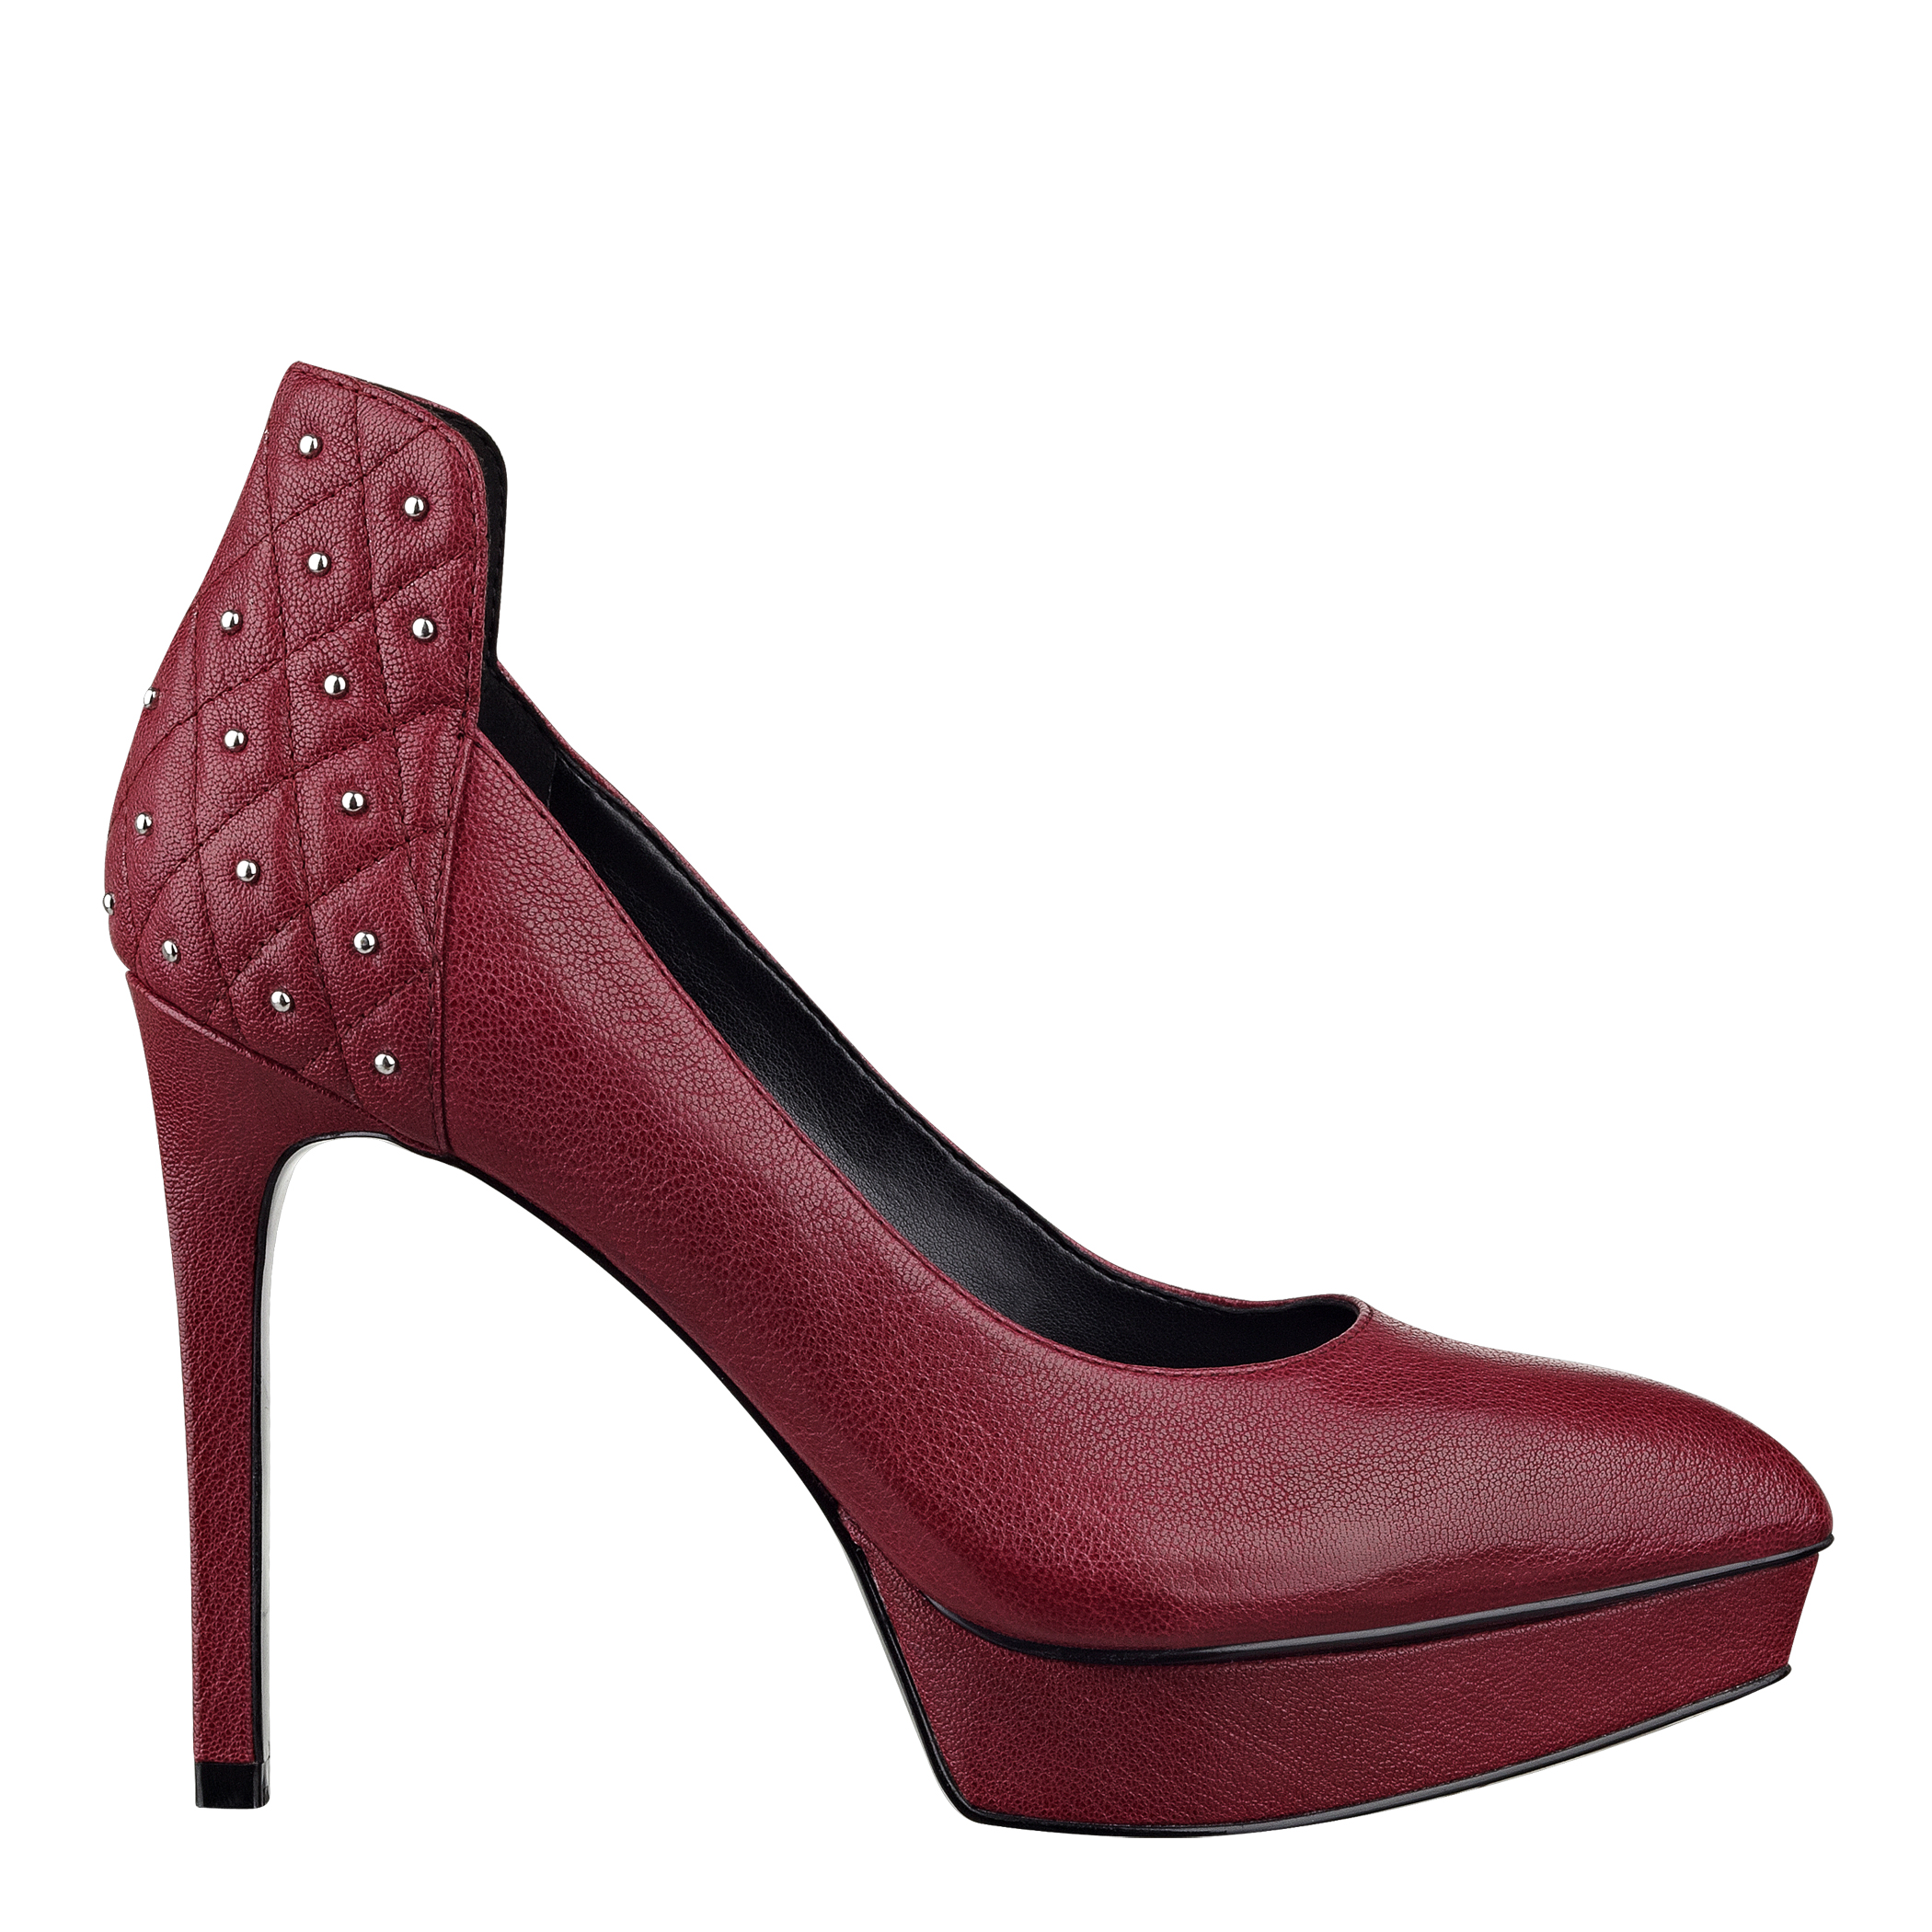 Latest Fashion of Stiletto & Heels Collection for women by Nine West(3)